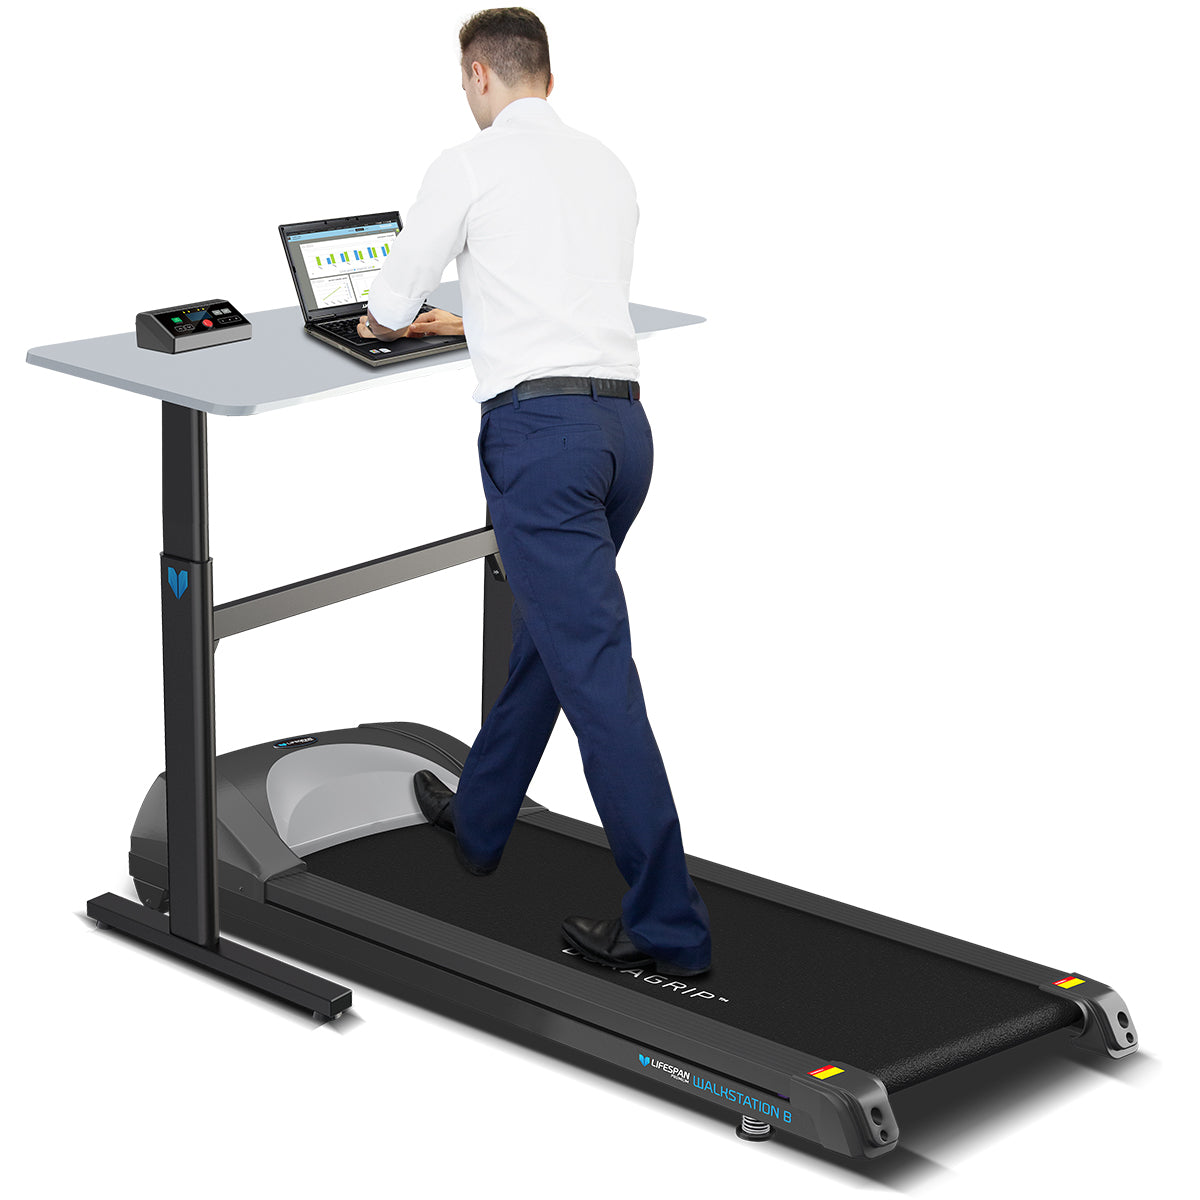 Lifespan Walkstation B Treadmill Base with Ergo Desk Package